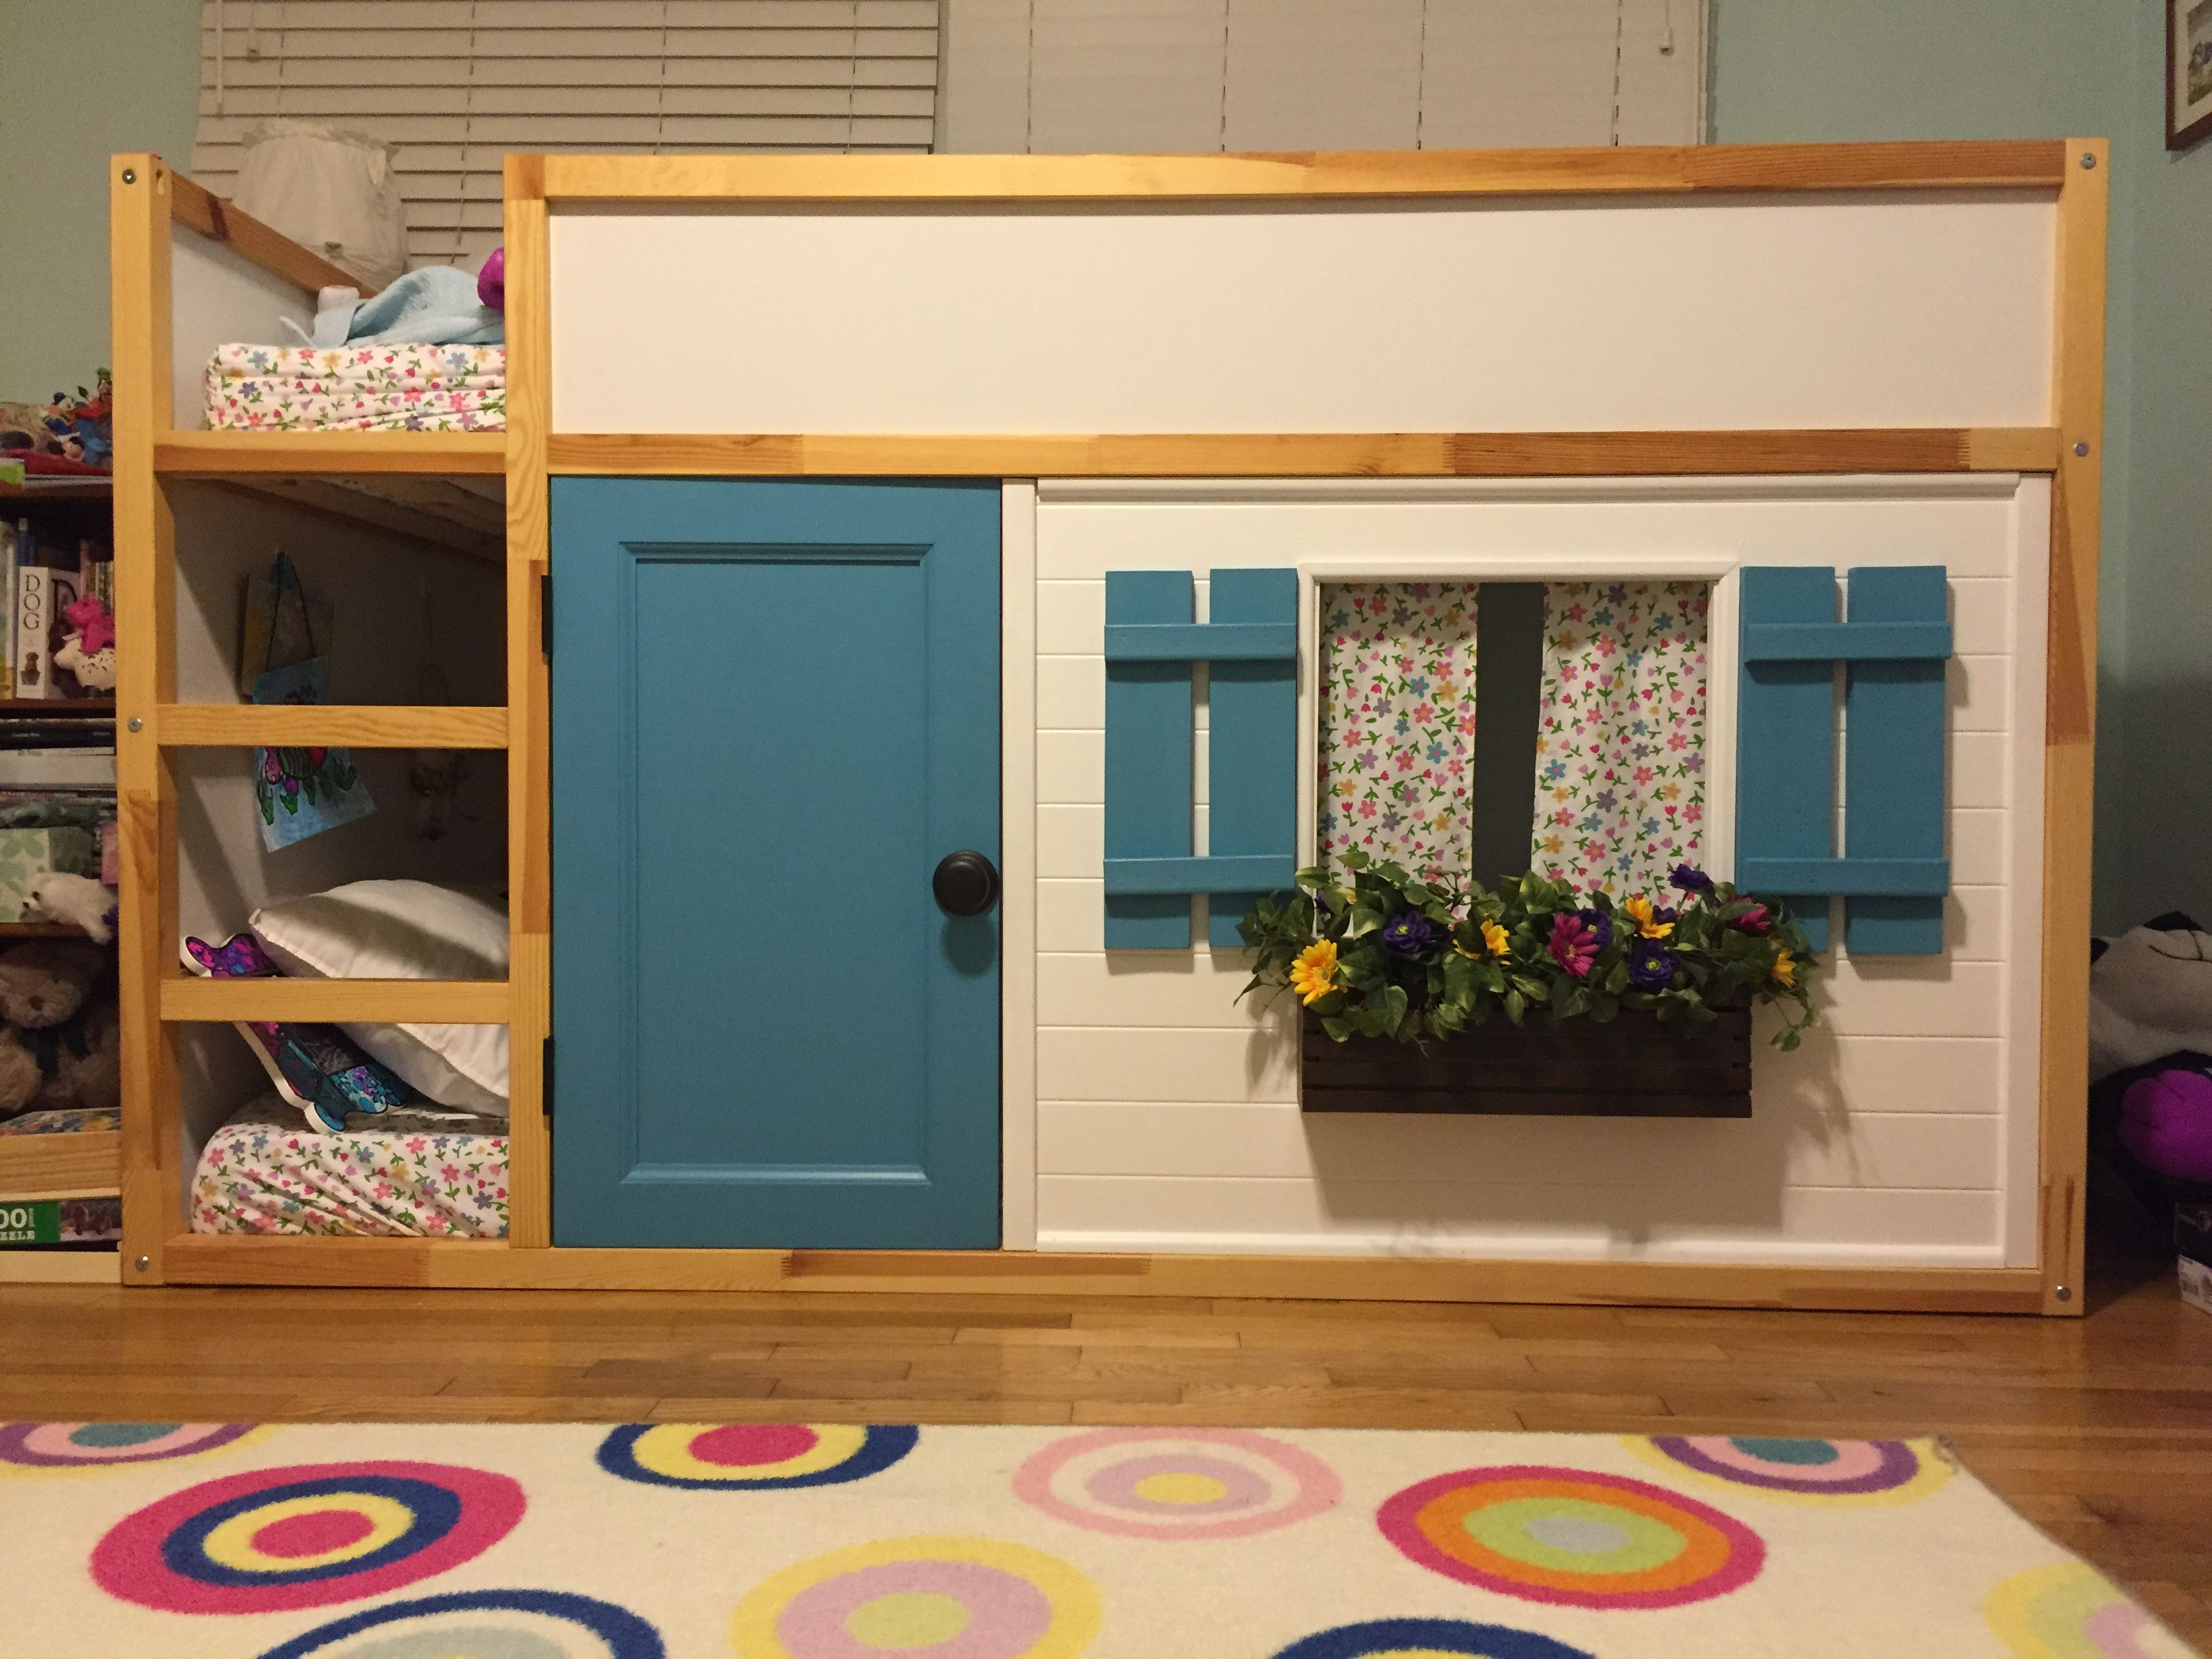 ikea hack i converted colette 39 s kura reversible bed into a playhouse by adding a front panel. Black Bedroom Furniture Sets. Home Design Ideas